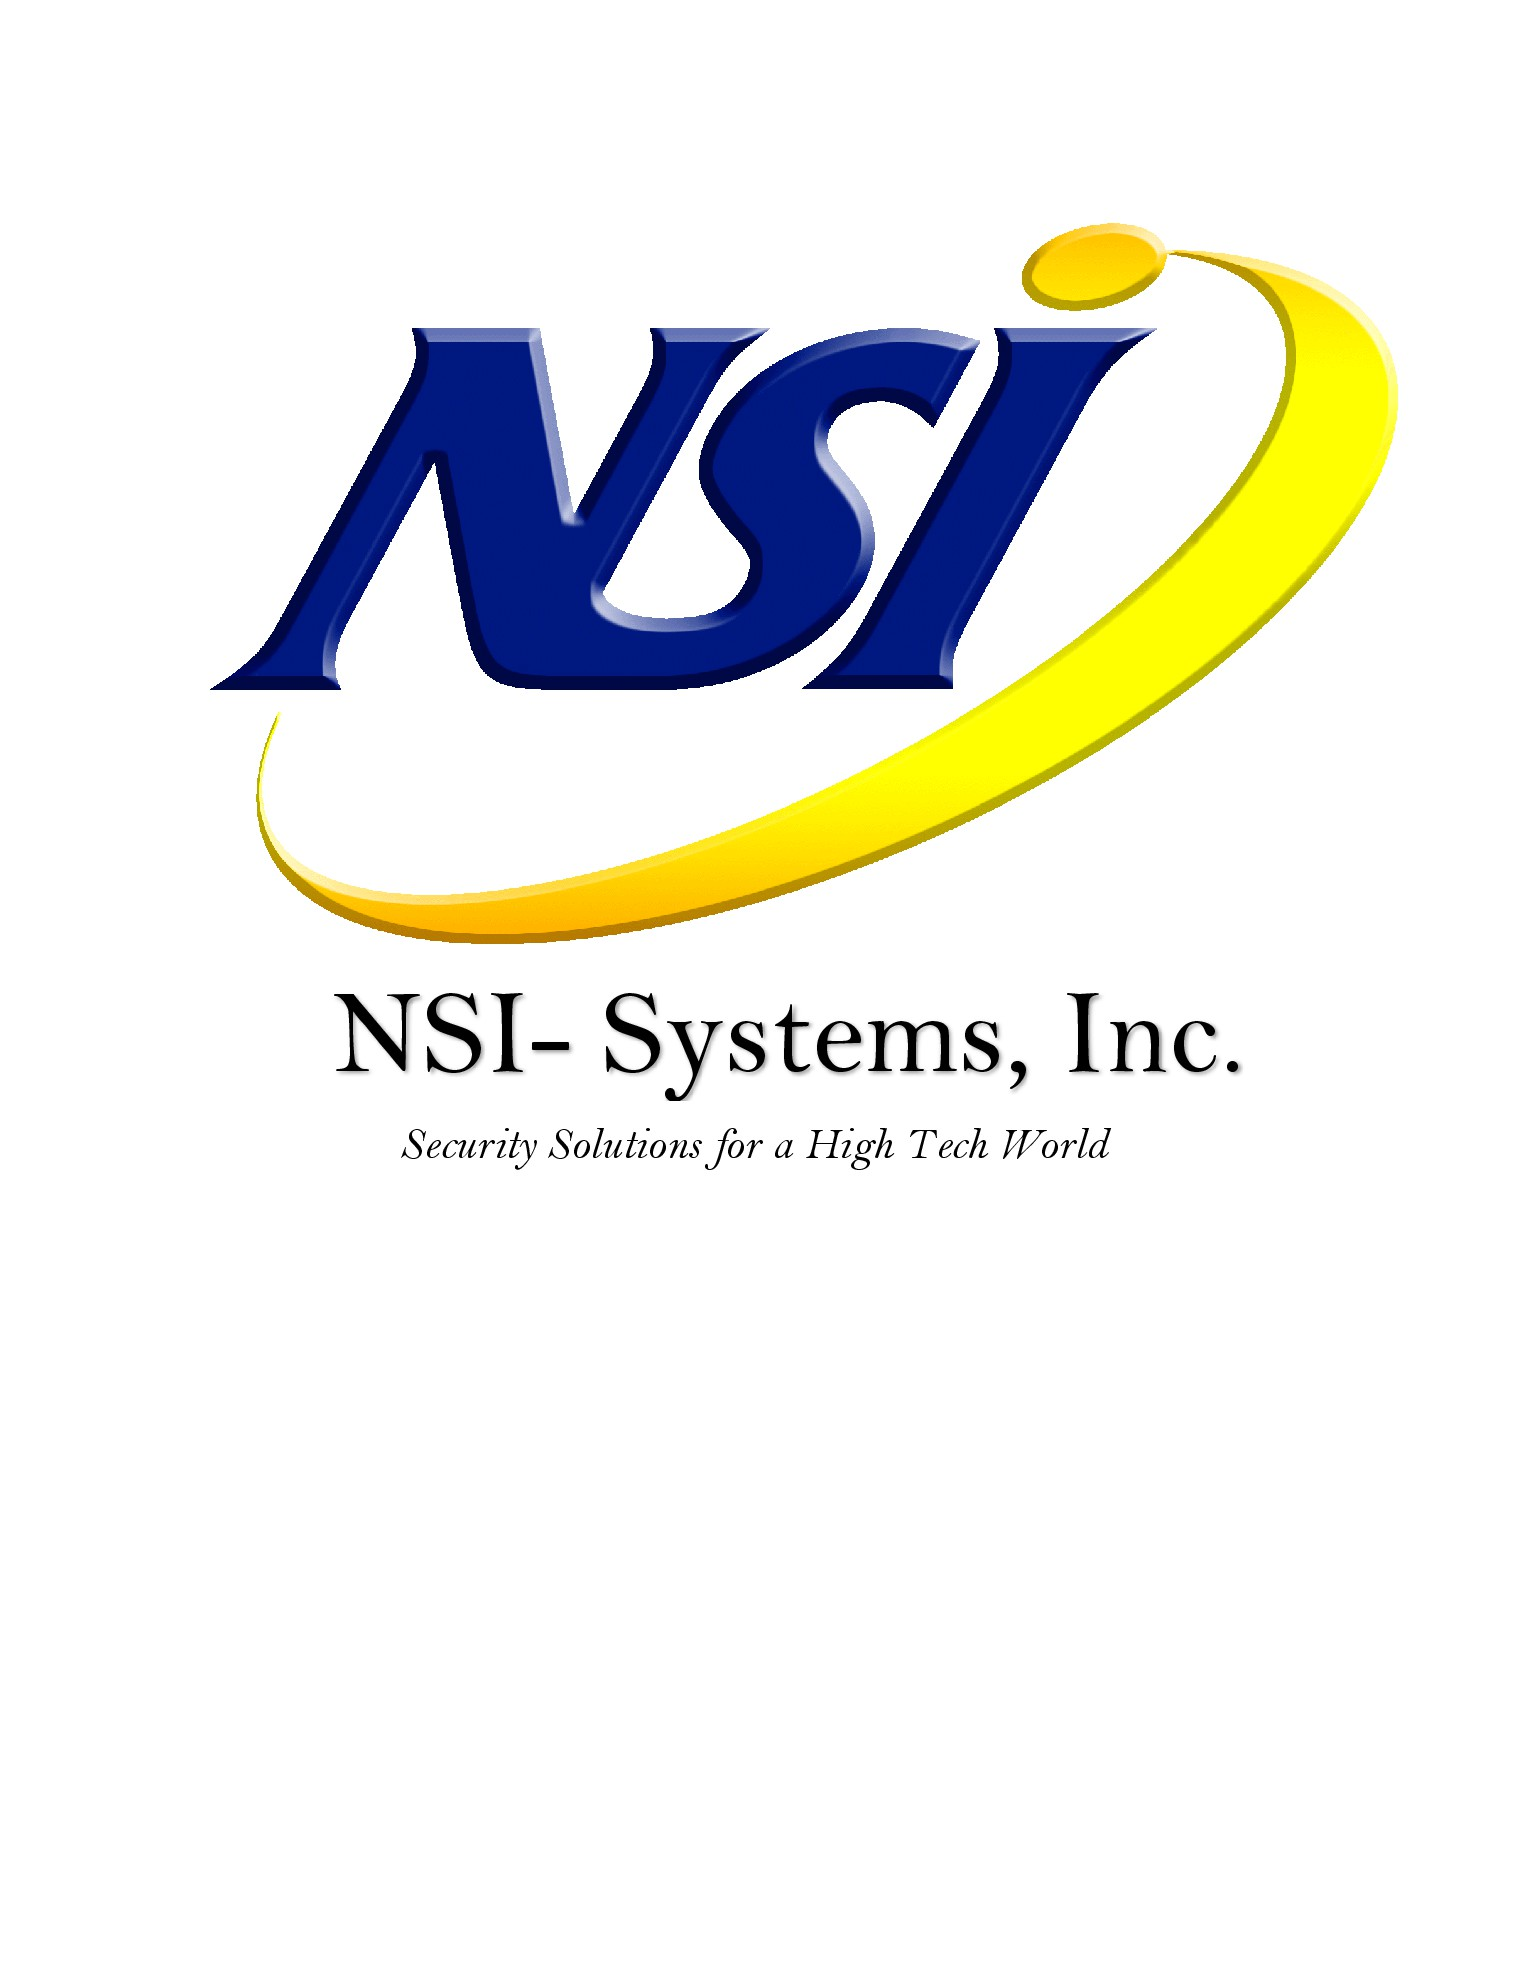 NSI Systems